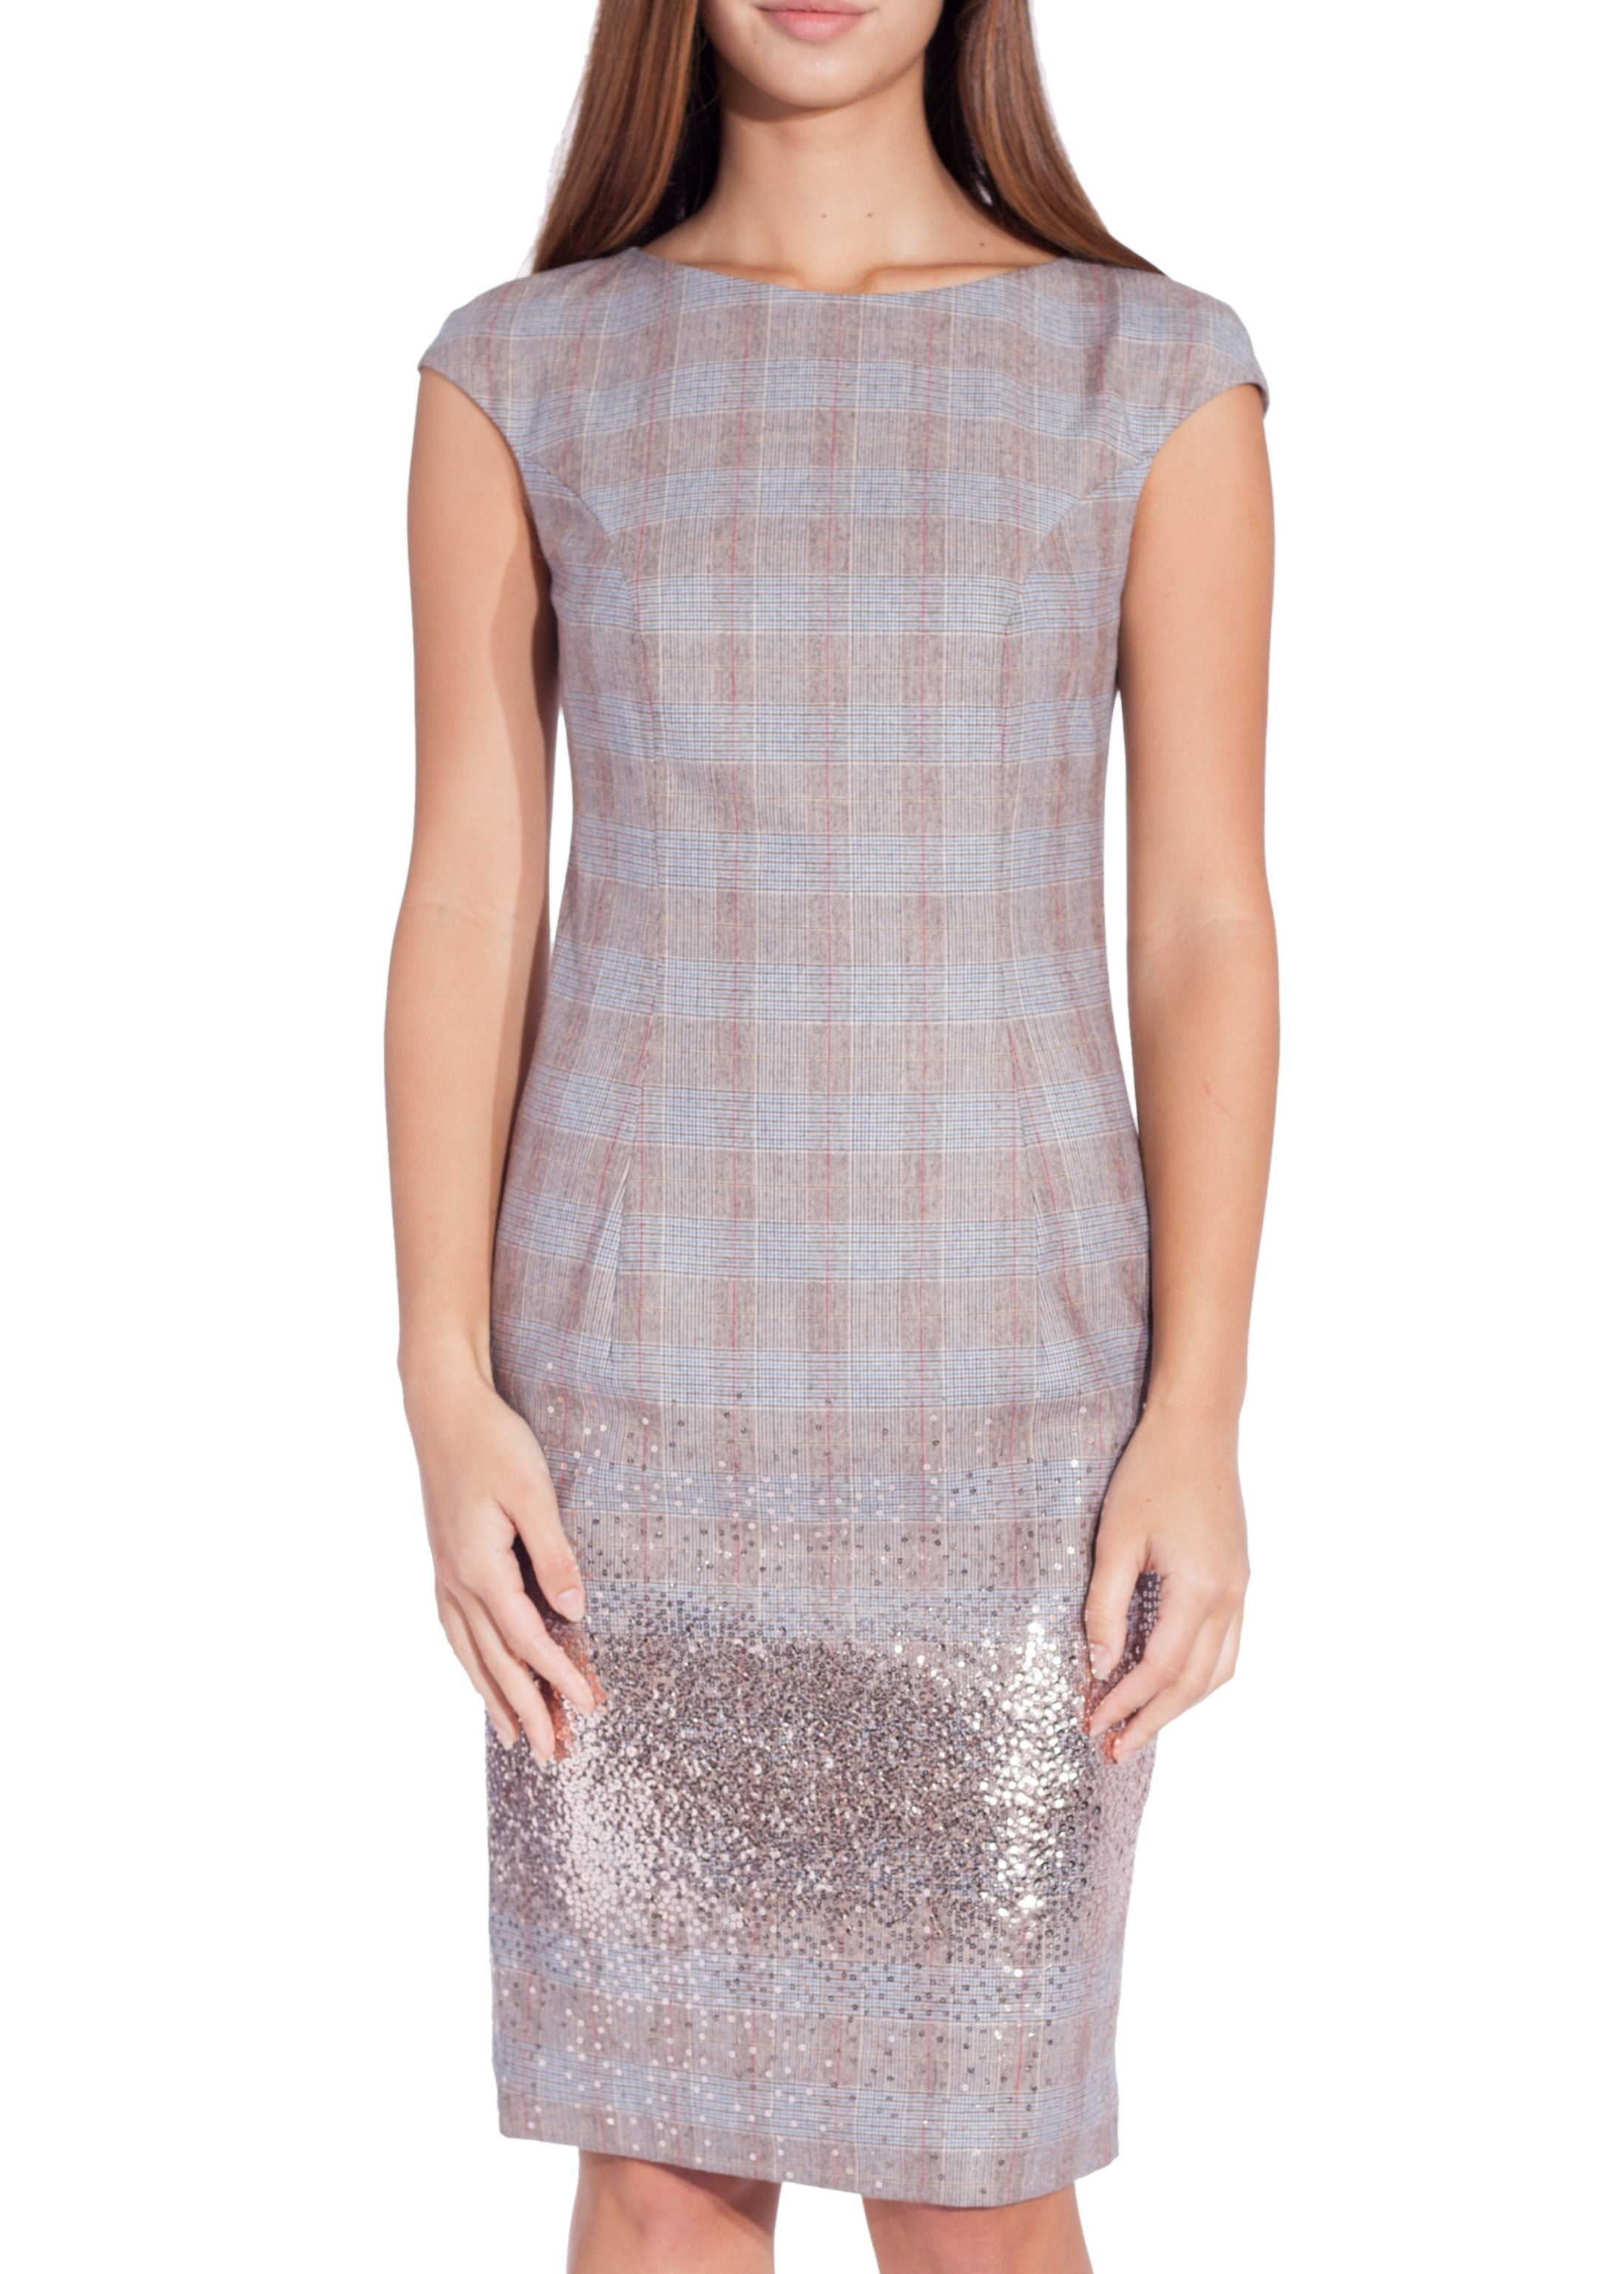 Blumarine sleeveless herringbone dress with sequins